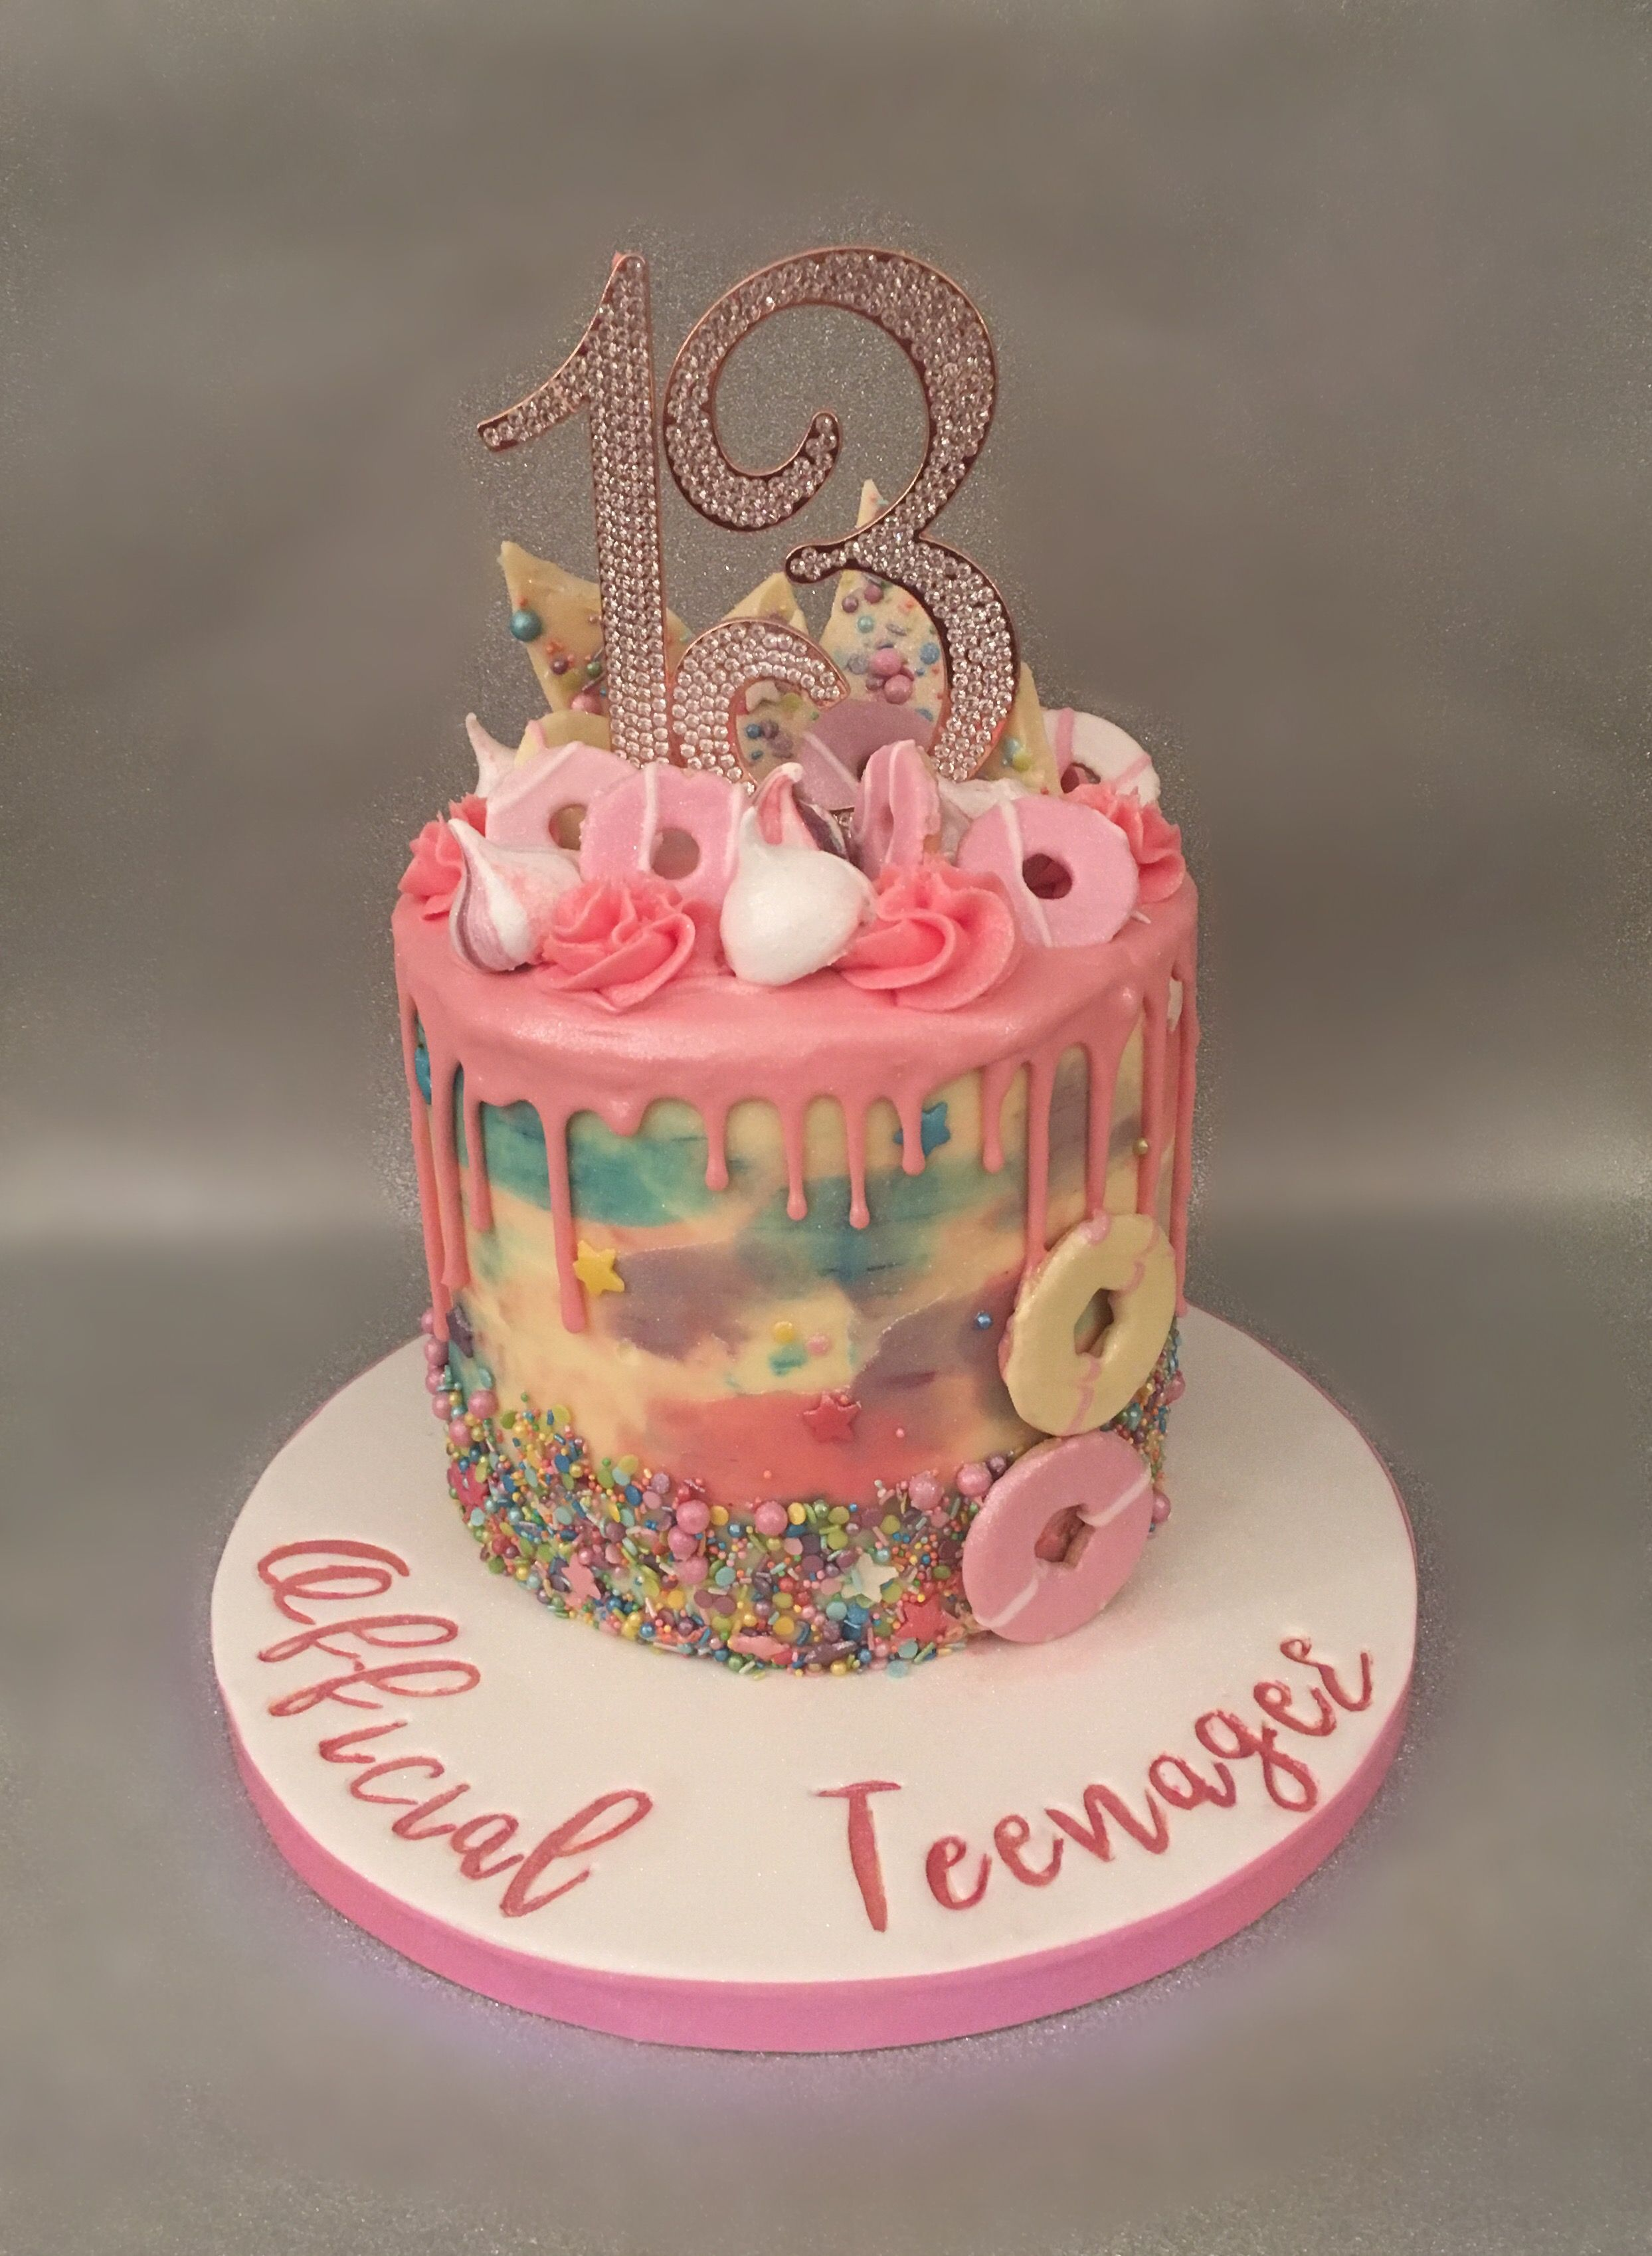 Official Teenager A Pink Chocolate Buttercream Drip Cake With